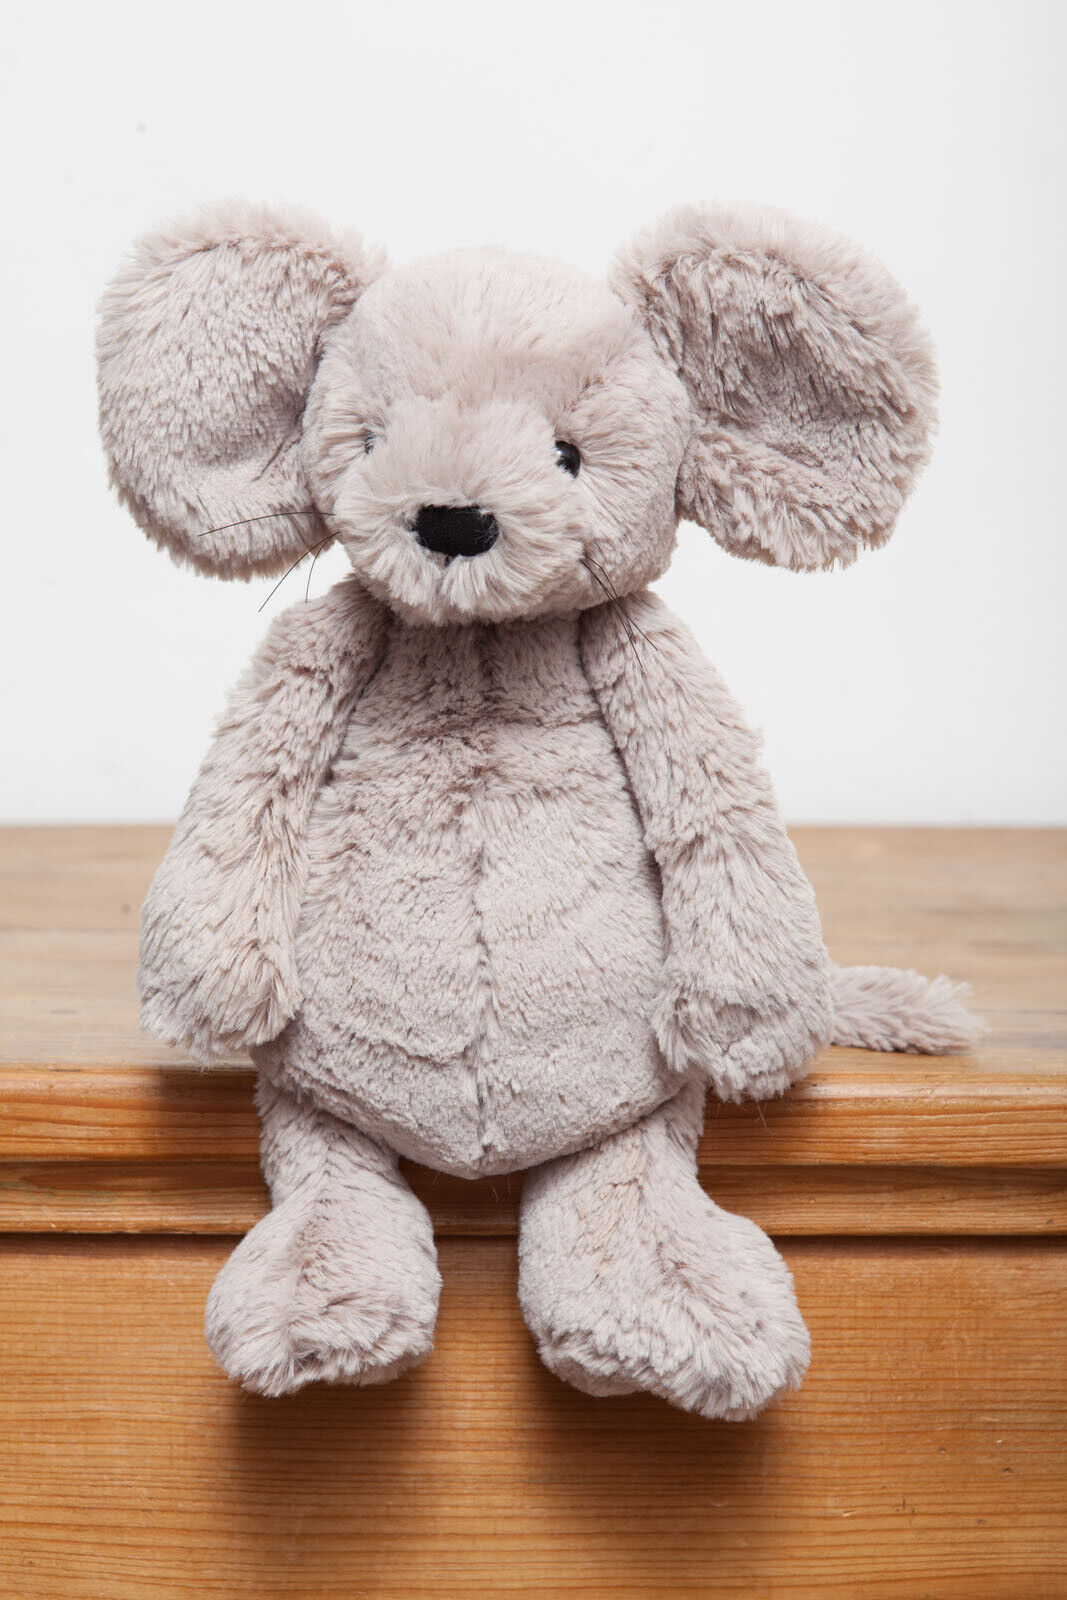 Jellycat Medium Bashful Beige Mouse - no whiskers